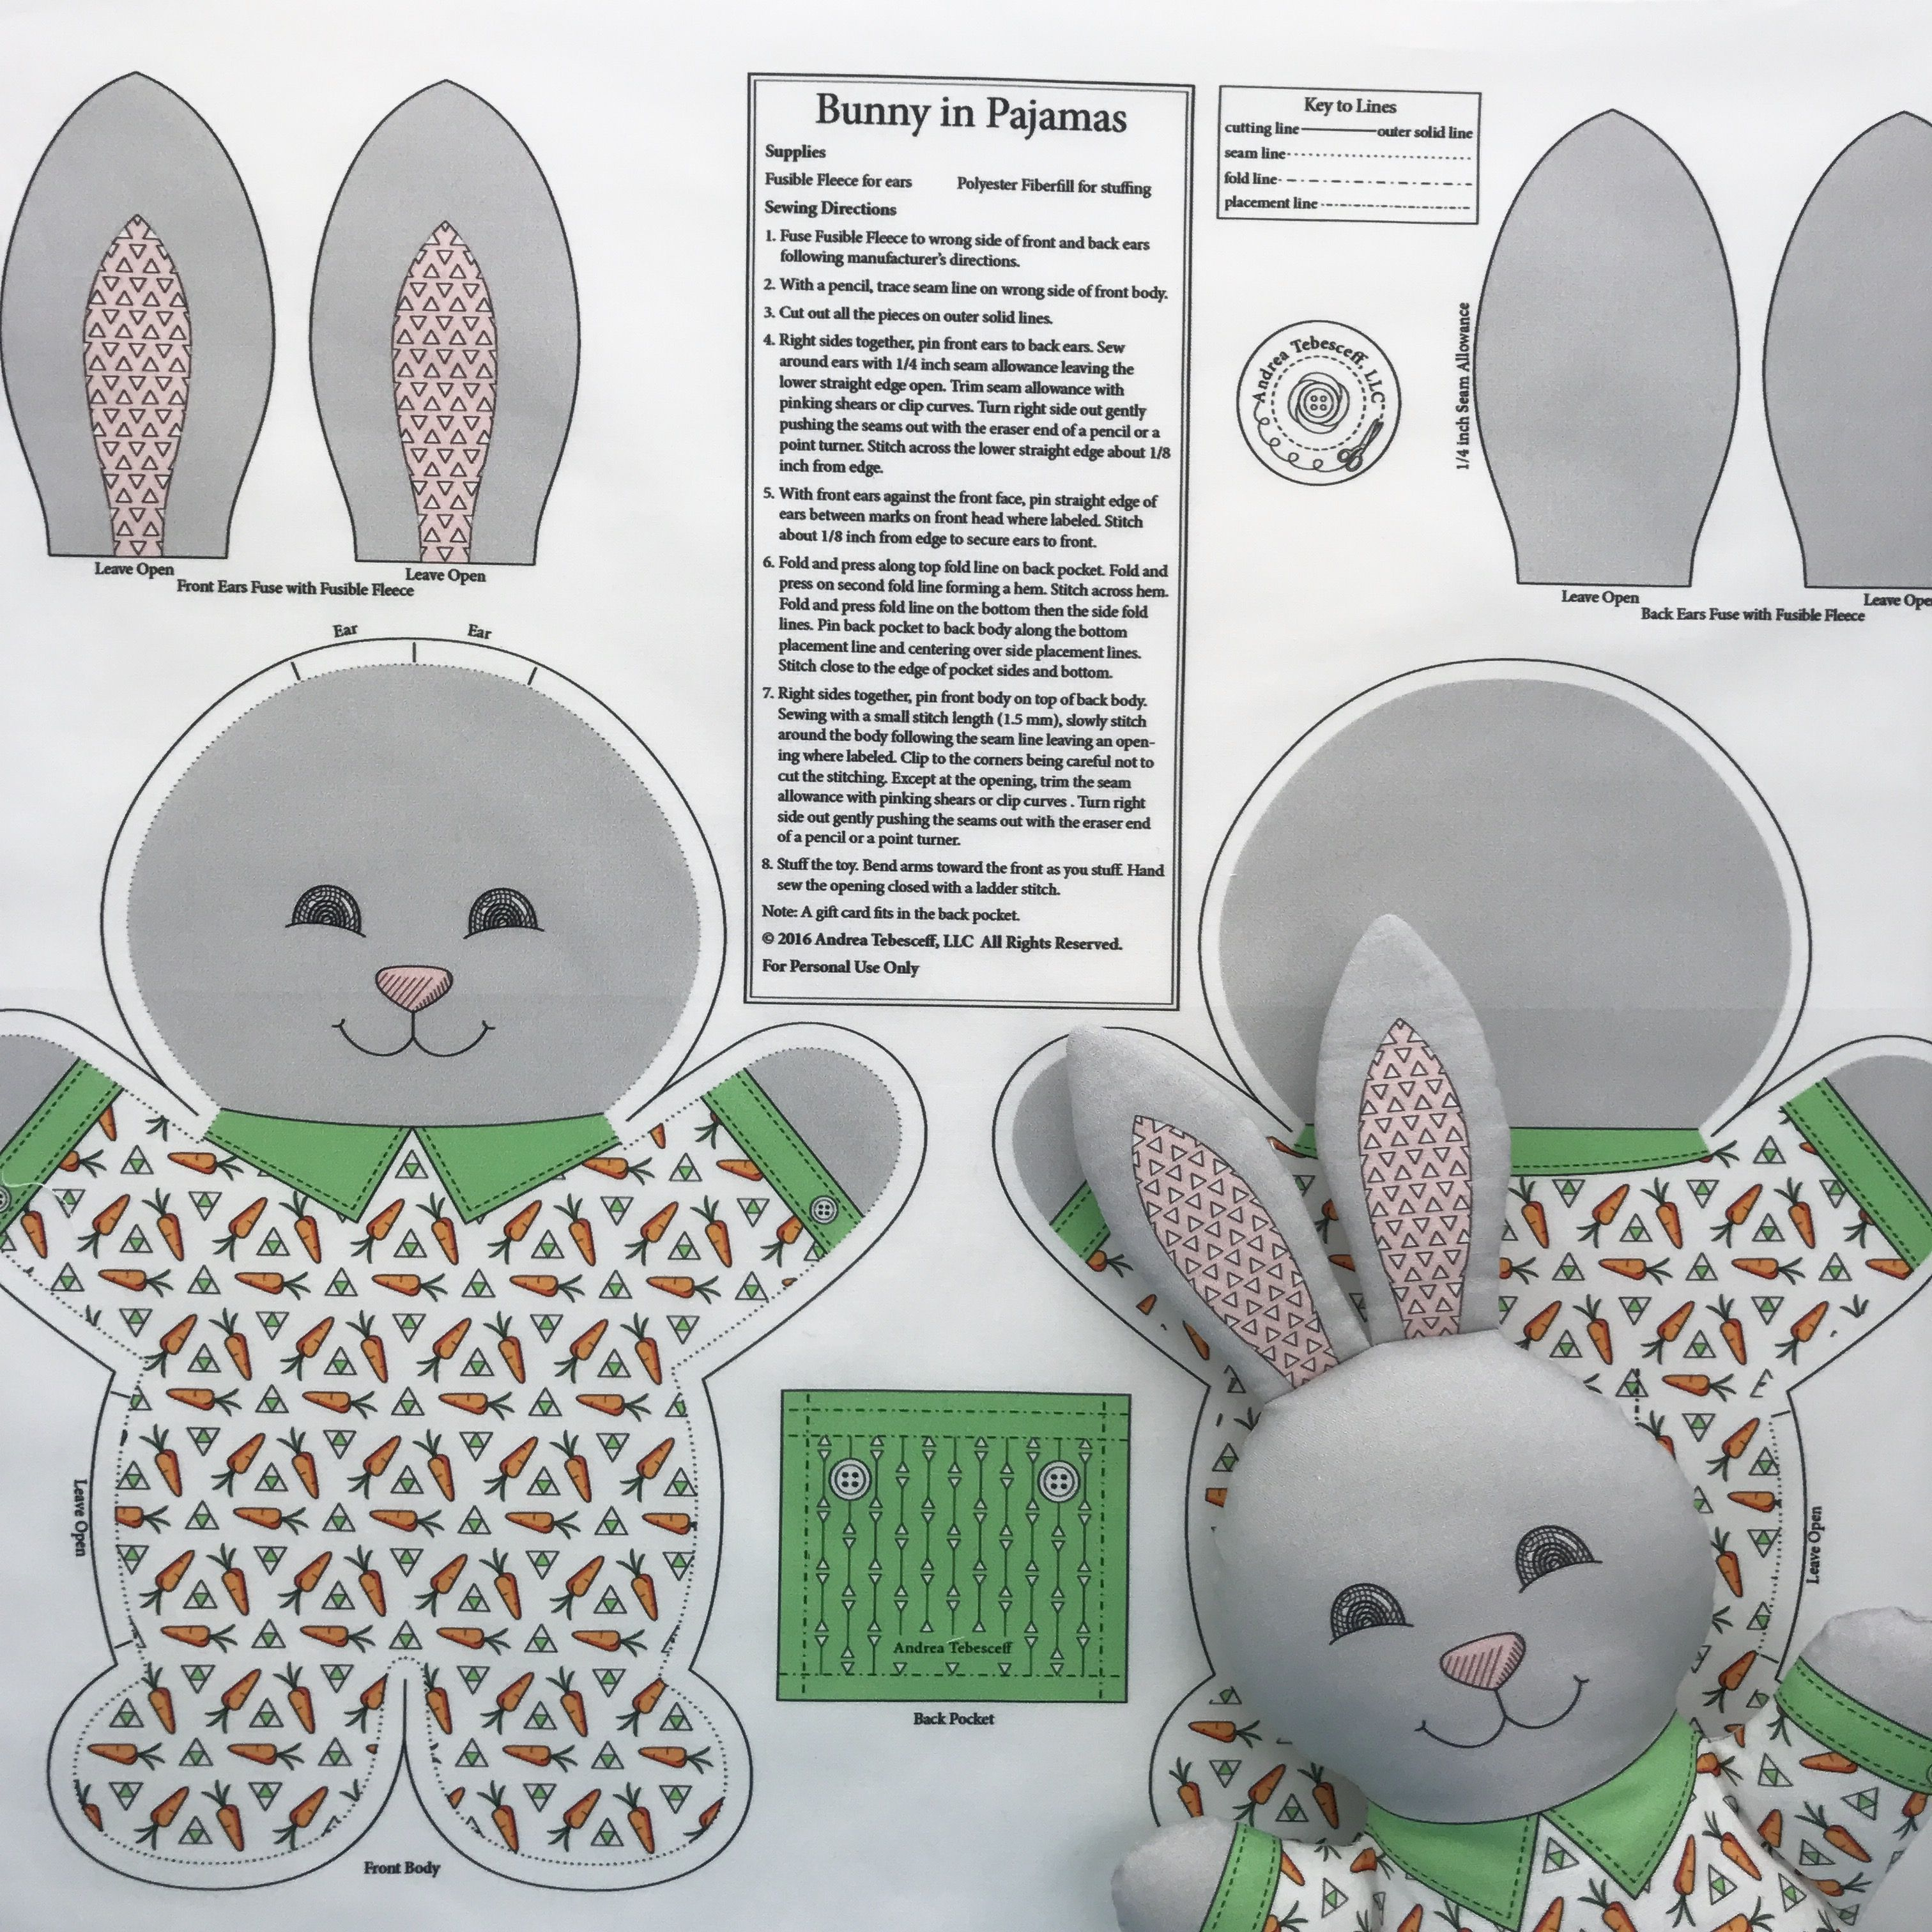 """""""Bunny in Pajamas"""" is the best-selling fabric in my Spoonflower shop. I always have my Cut and Sew fabric panels printed on Kona Cotton. This fabric makes wonderful soft toys. You cut and sew and stuff """"Bunny in Pajamas"""" following the directions. The finished toy will measure about 14 inches tall. All my Cut and Sew fabric panels are available in my Spoonflower shop. Link in Profile."""